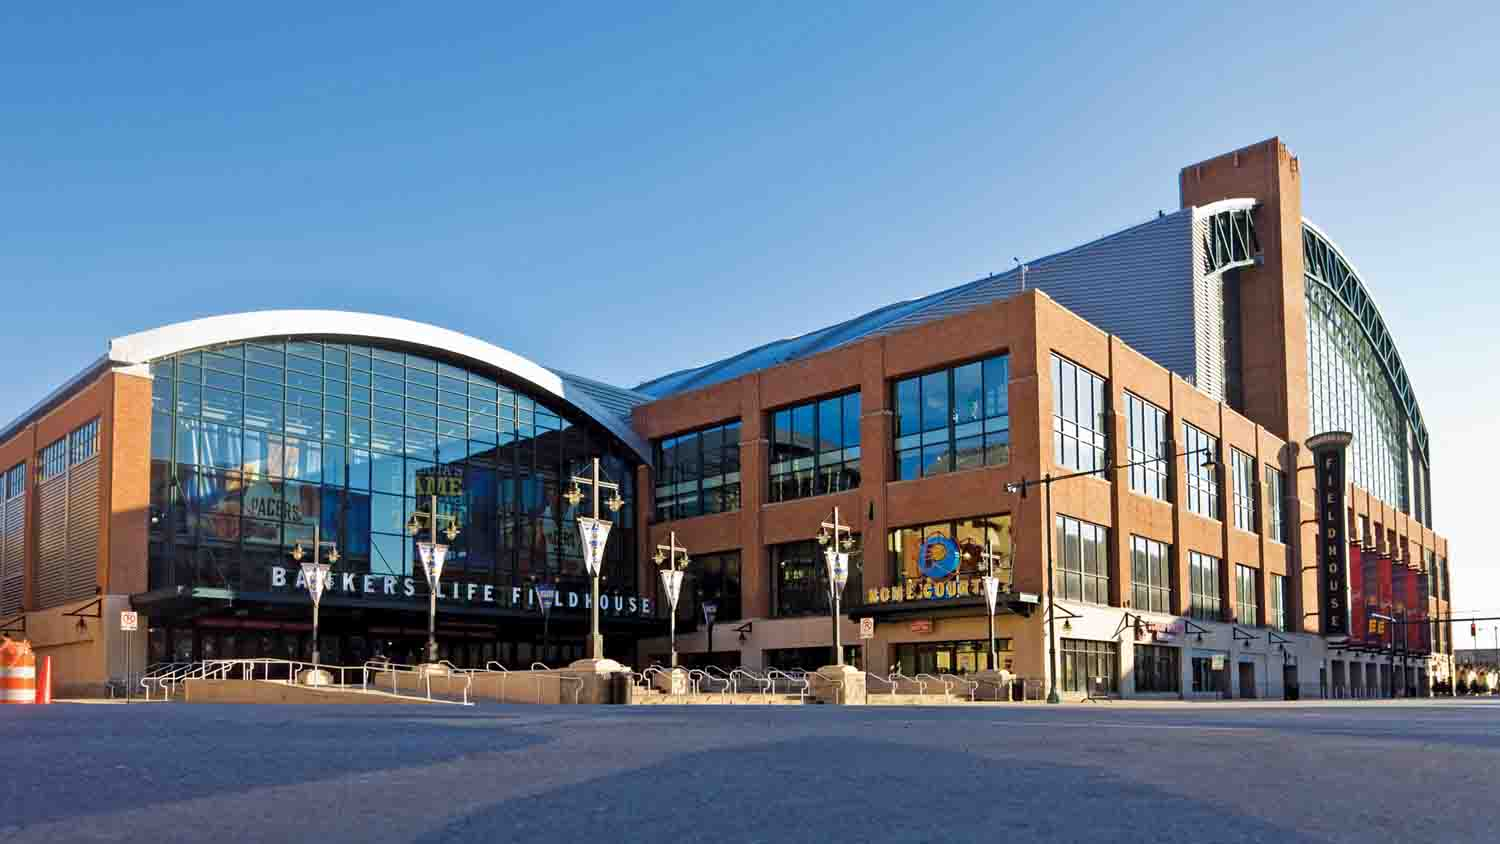 Bankers-life-fieldhouse-1